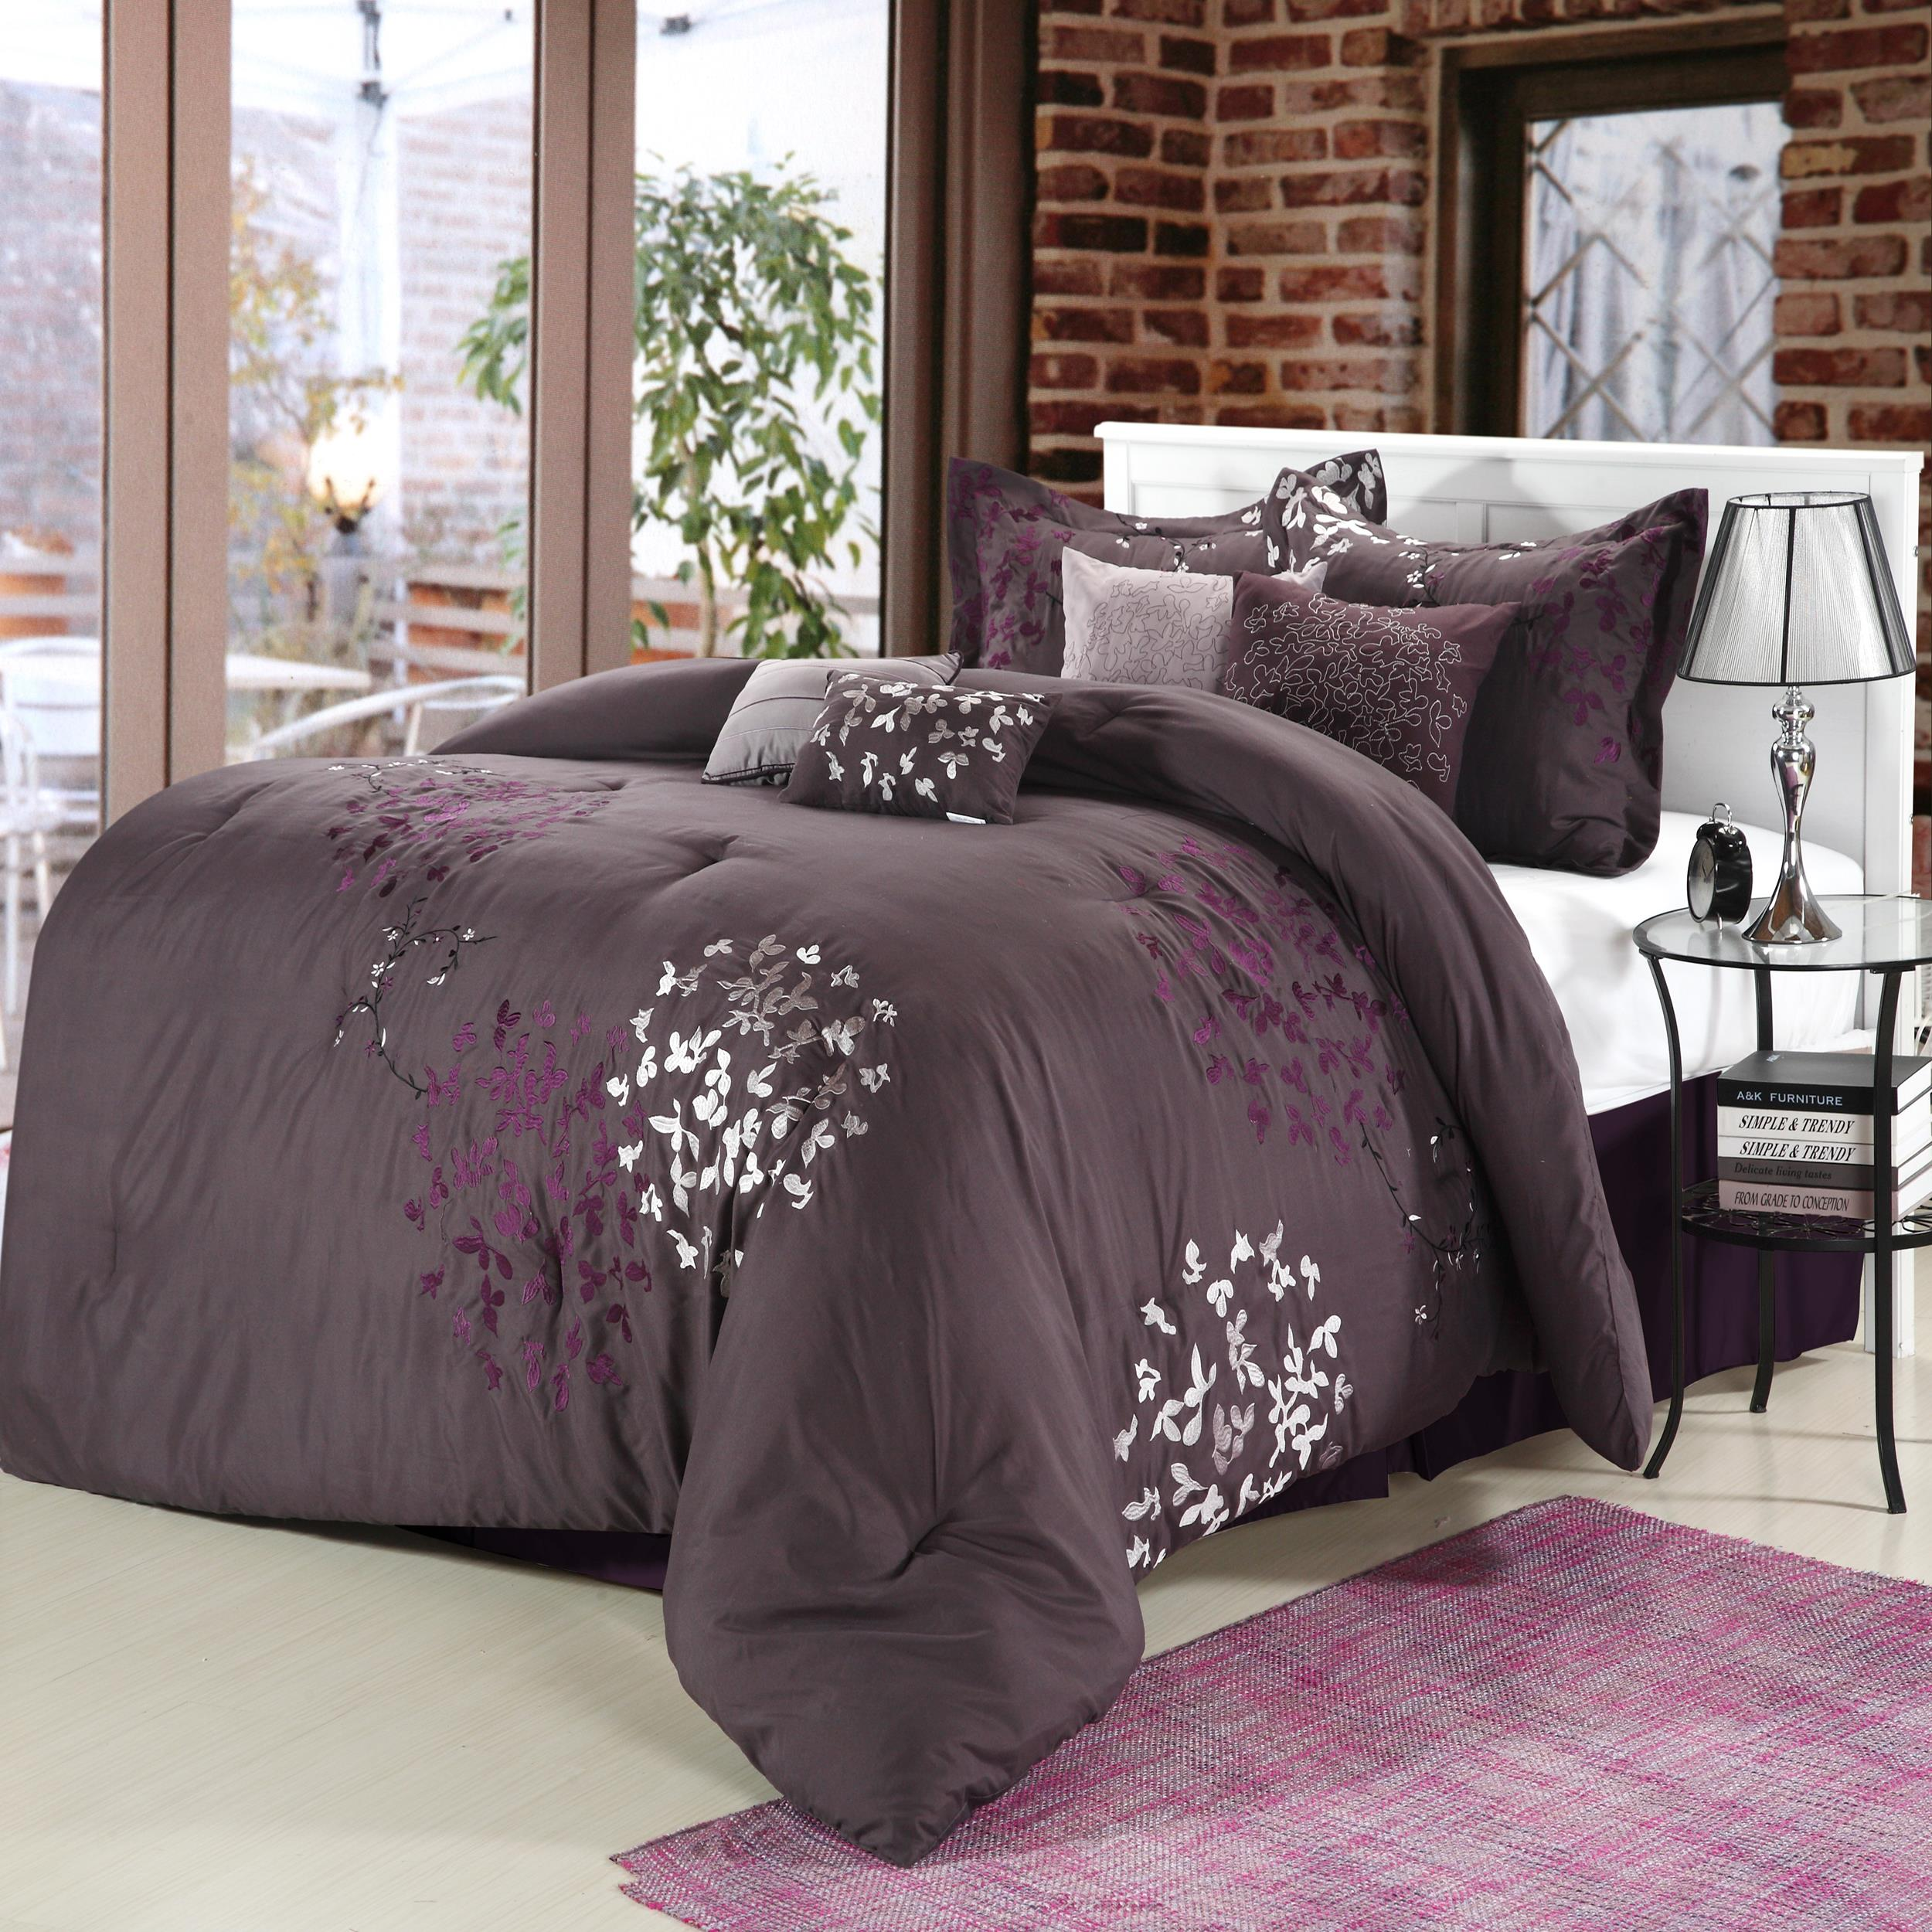 cheila purple silver plum 8 piece comforter bed in a bag set new ebay. Black Bedroom Furniture Sets. Home Design Ideas